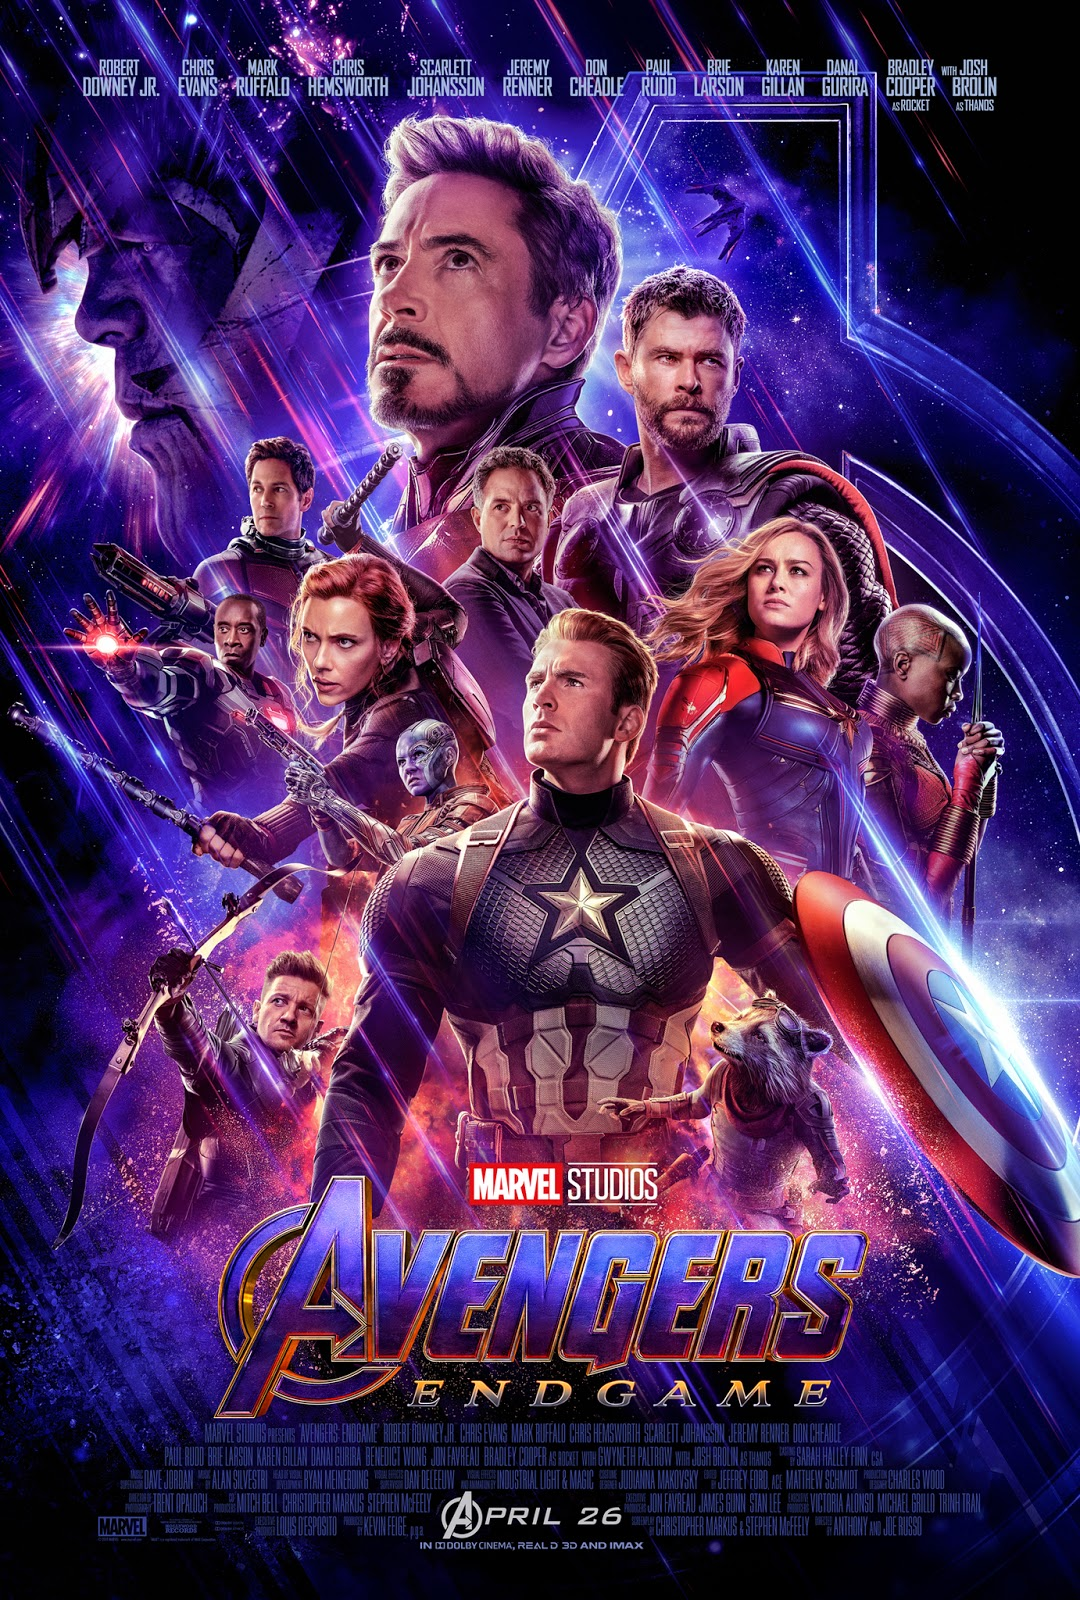 Top 10 Moments The Crowd Cheers Loudest In Avengers Endgame And Why Blakeonline Com